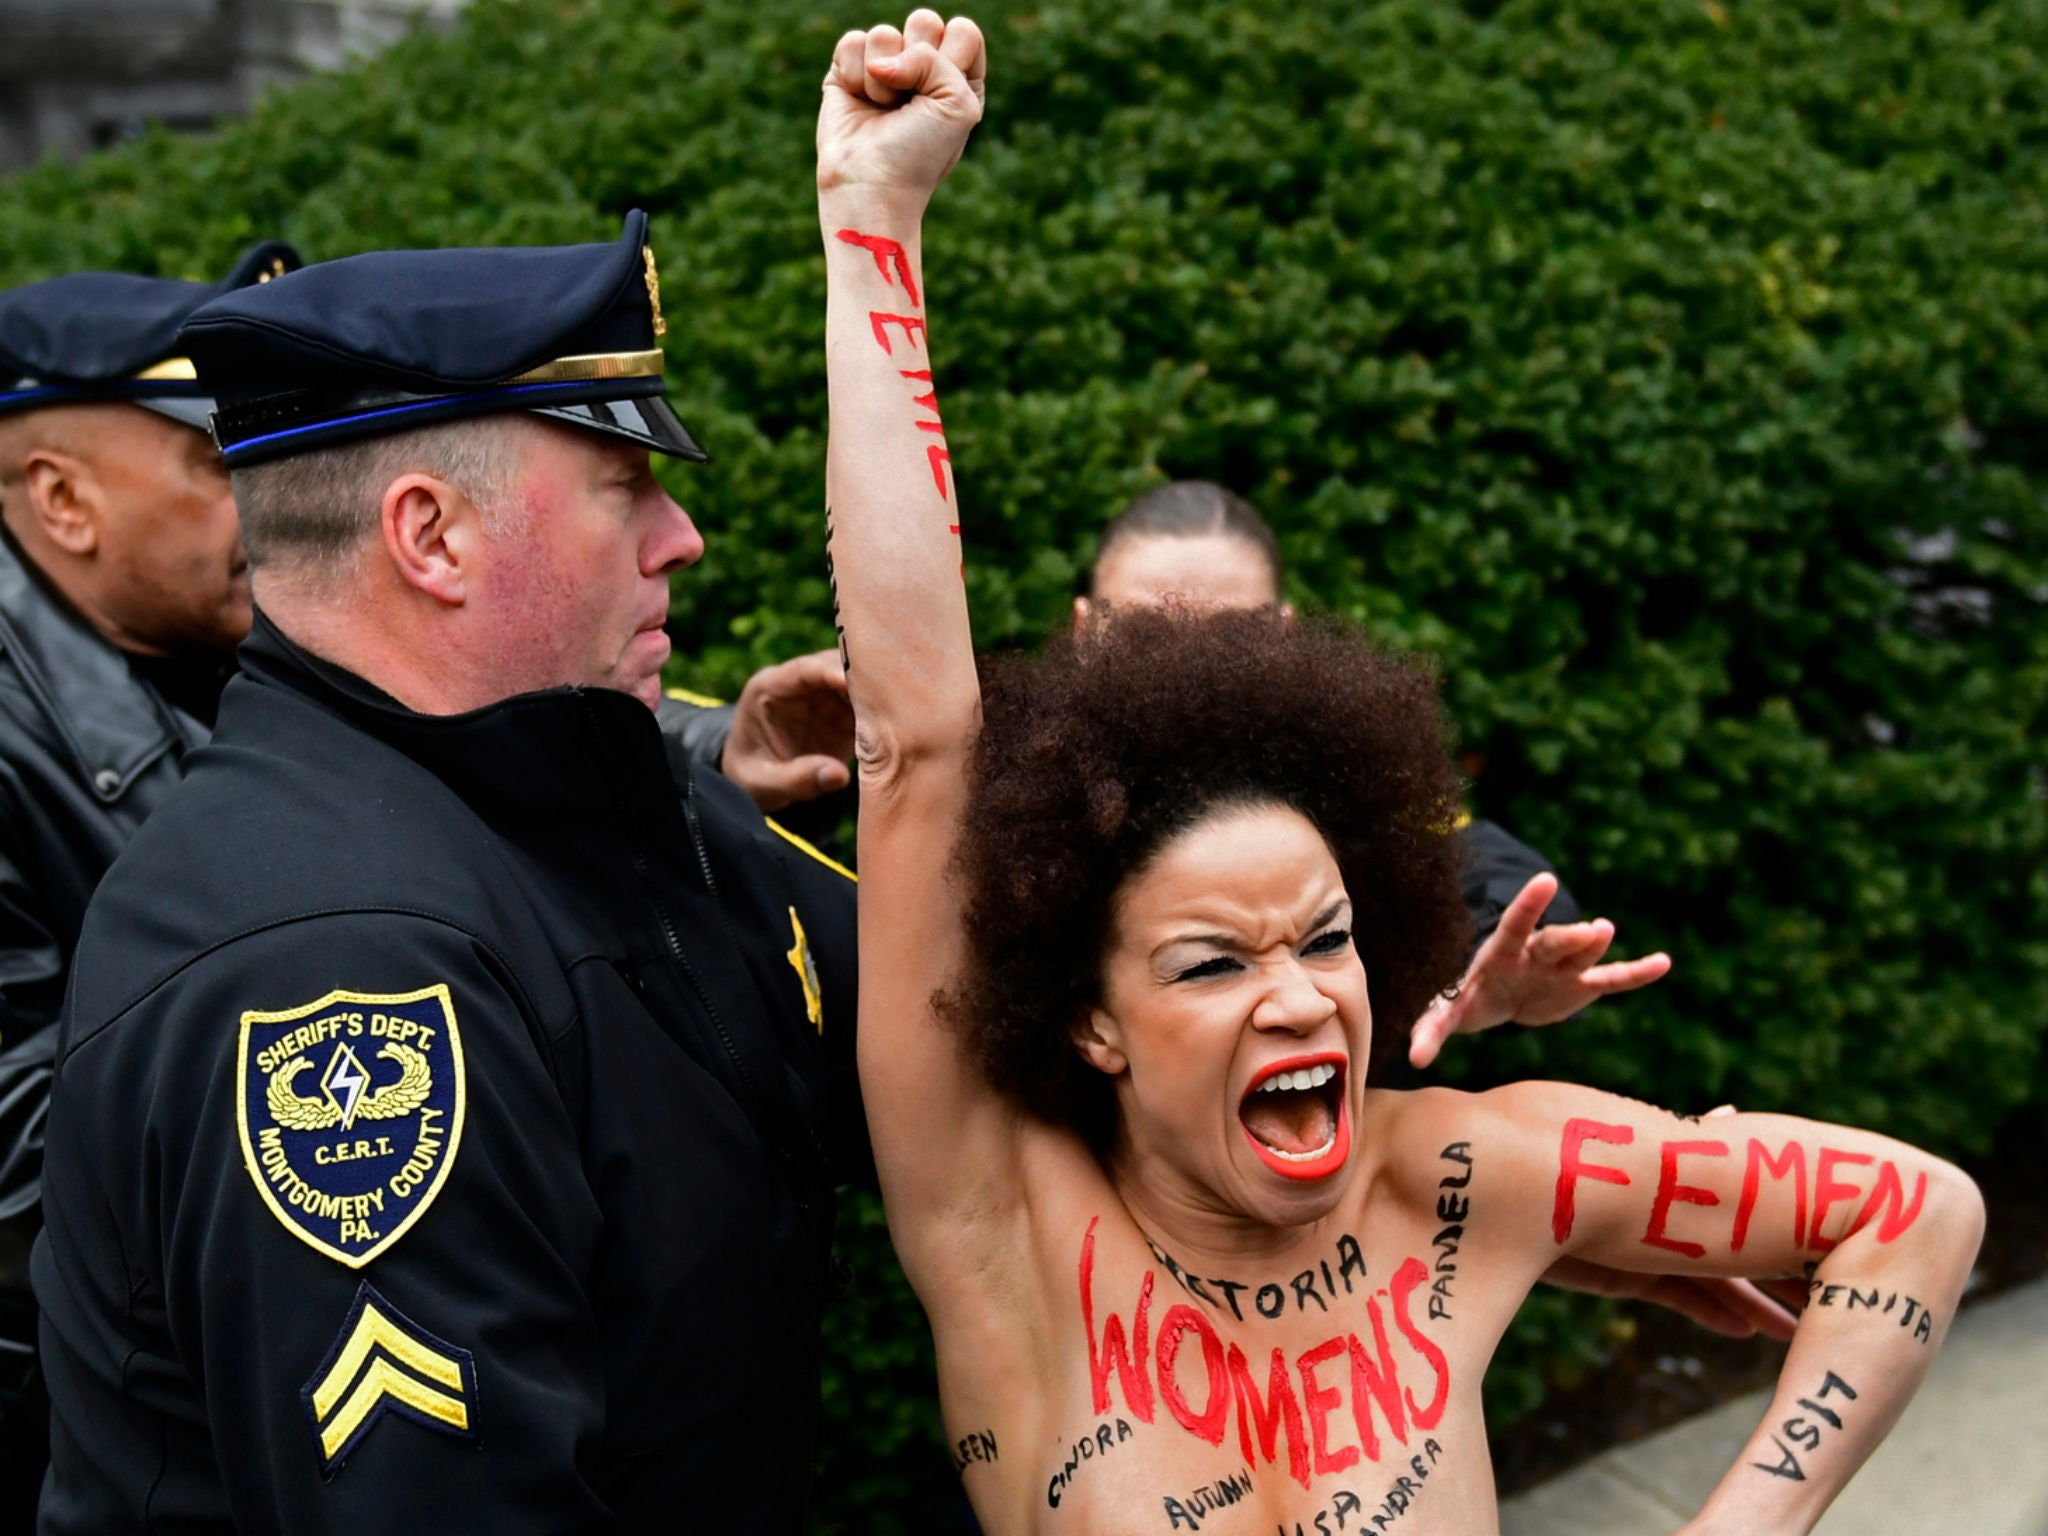 Who Is Nicolle Rochelle? Topless Protester at Bill Cosby